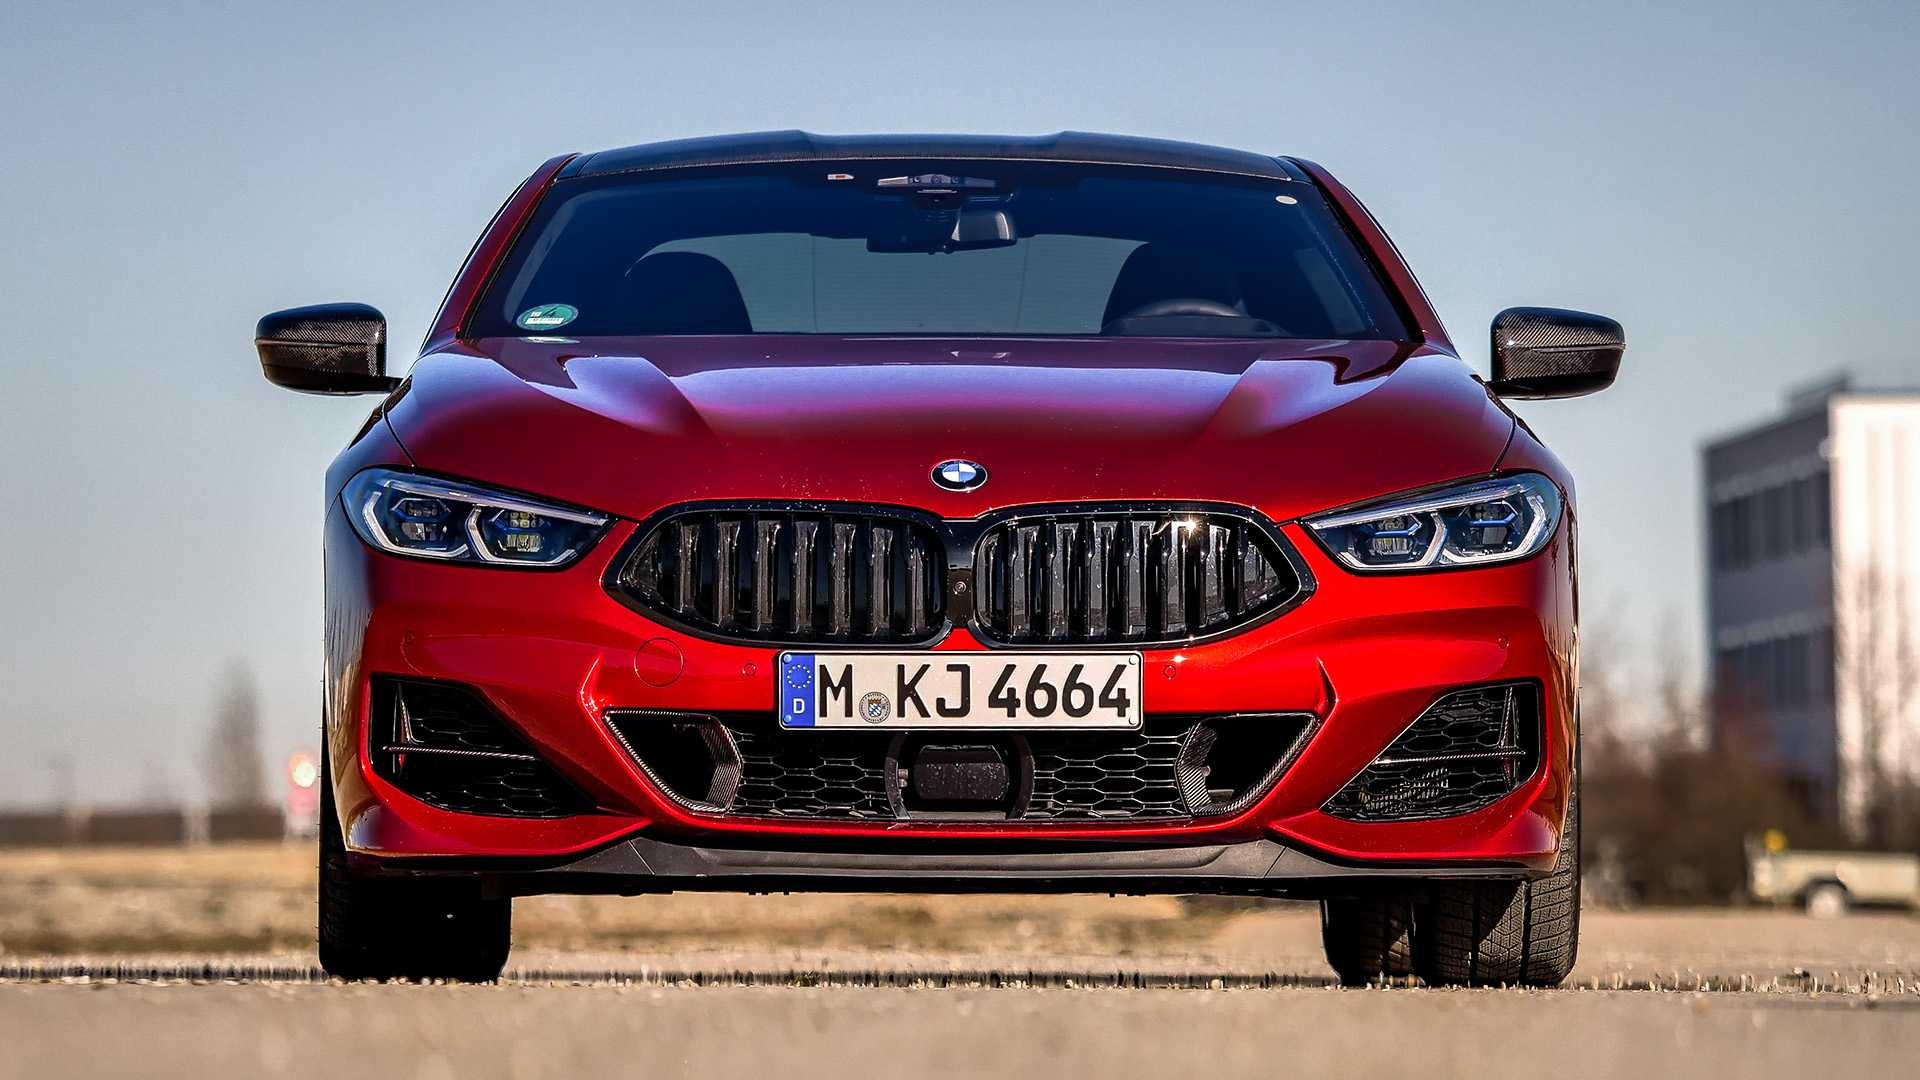 2020 BMW 8 Series Lineup Gets Entry-Level 840i Model From $87,900